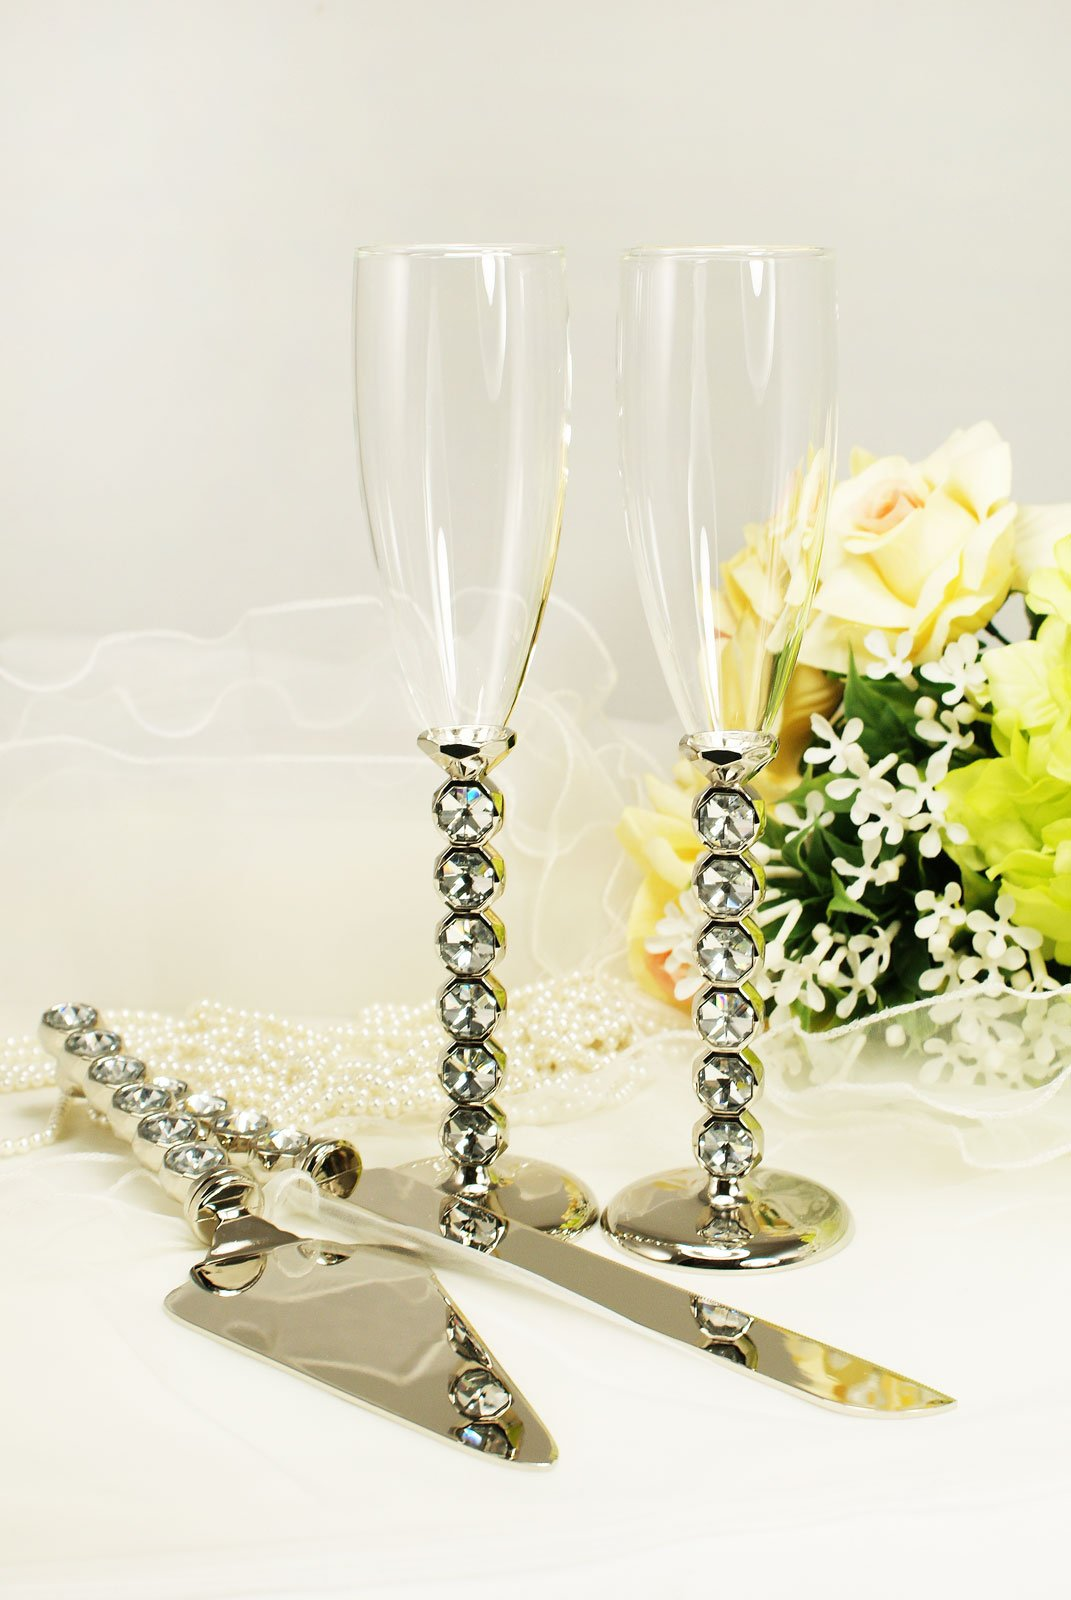 Silver Wedding Toasting Glass Knife and Wedding Cake Server Set Personalized Engraved